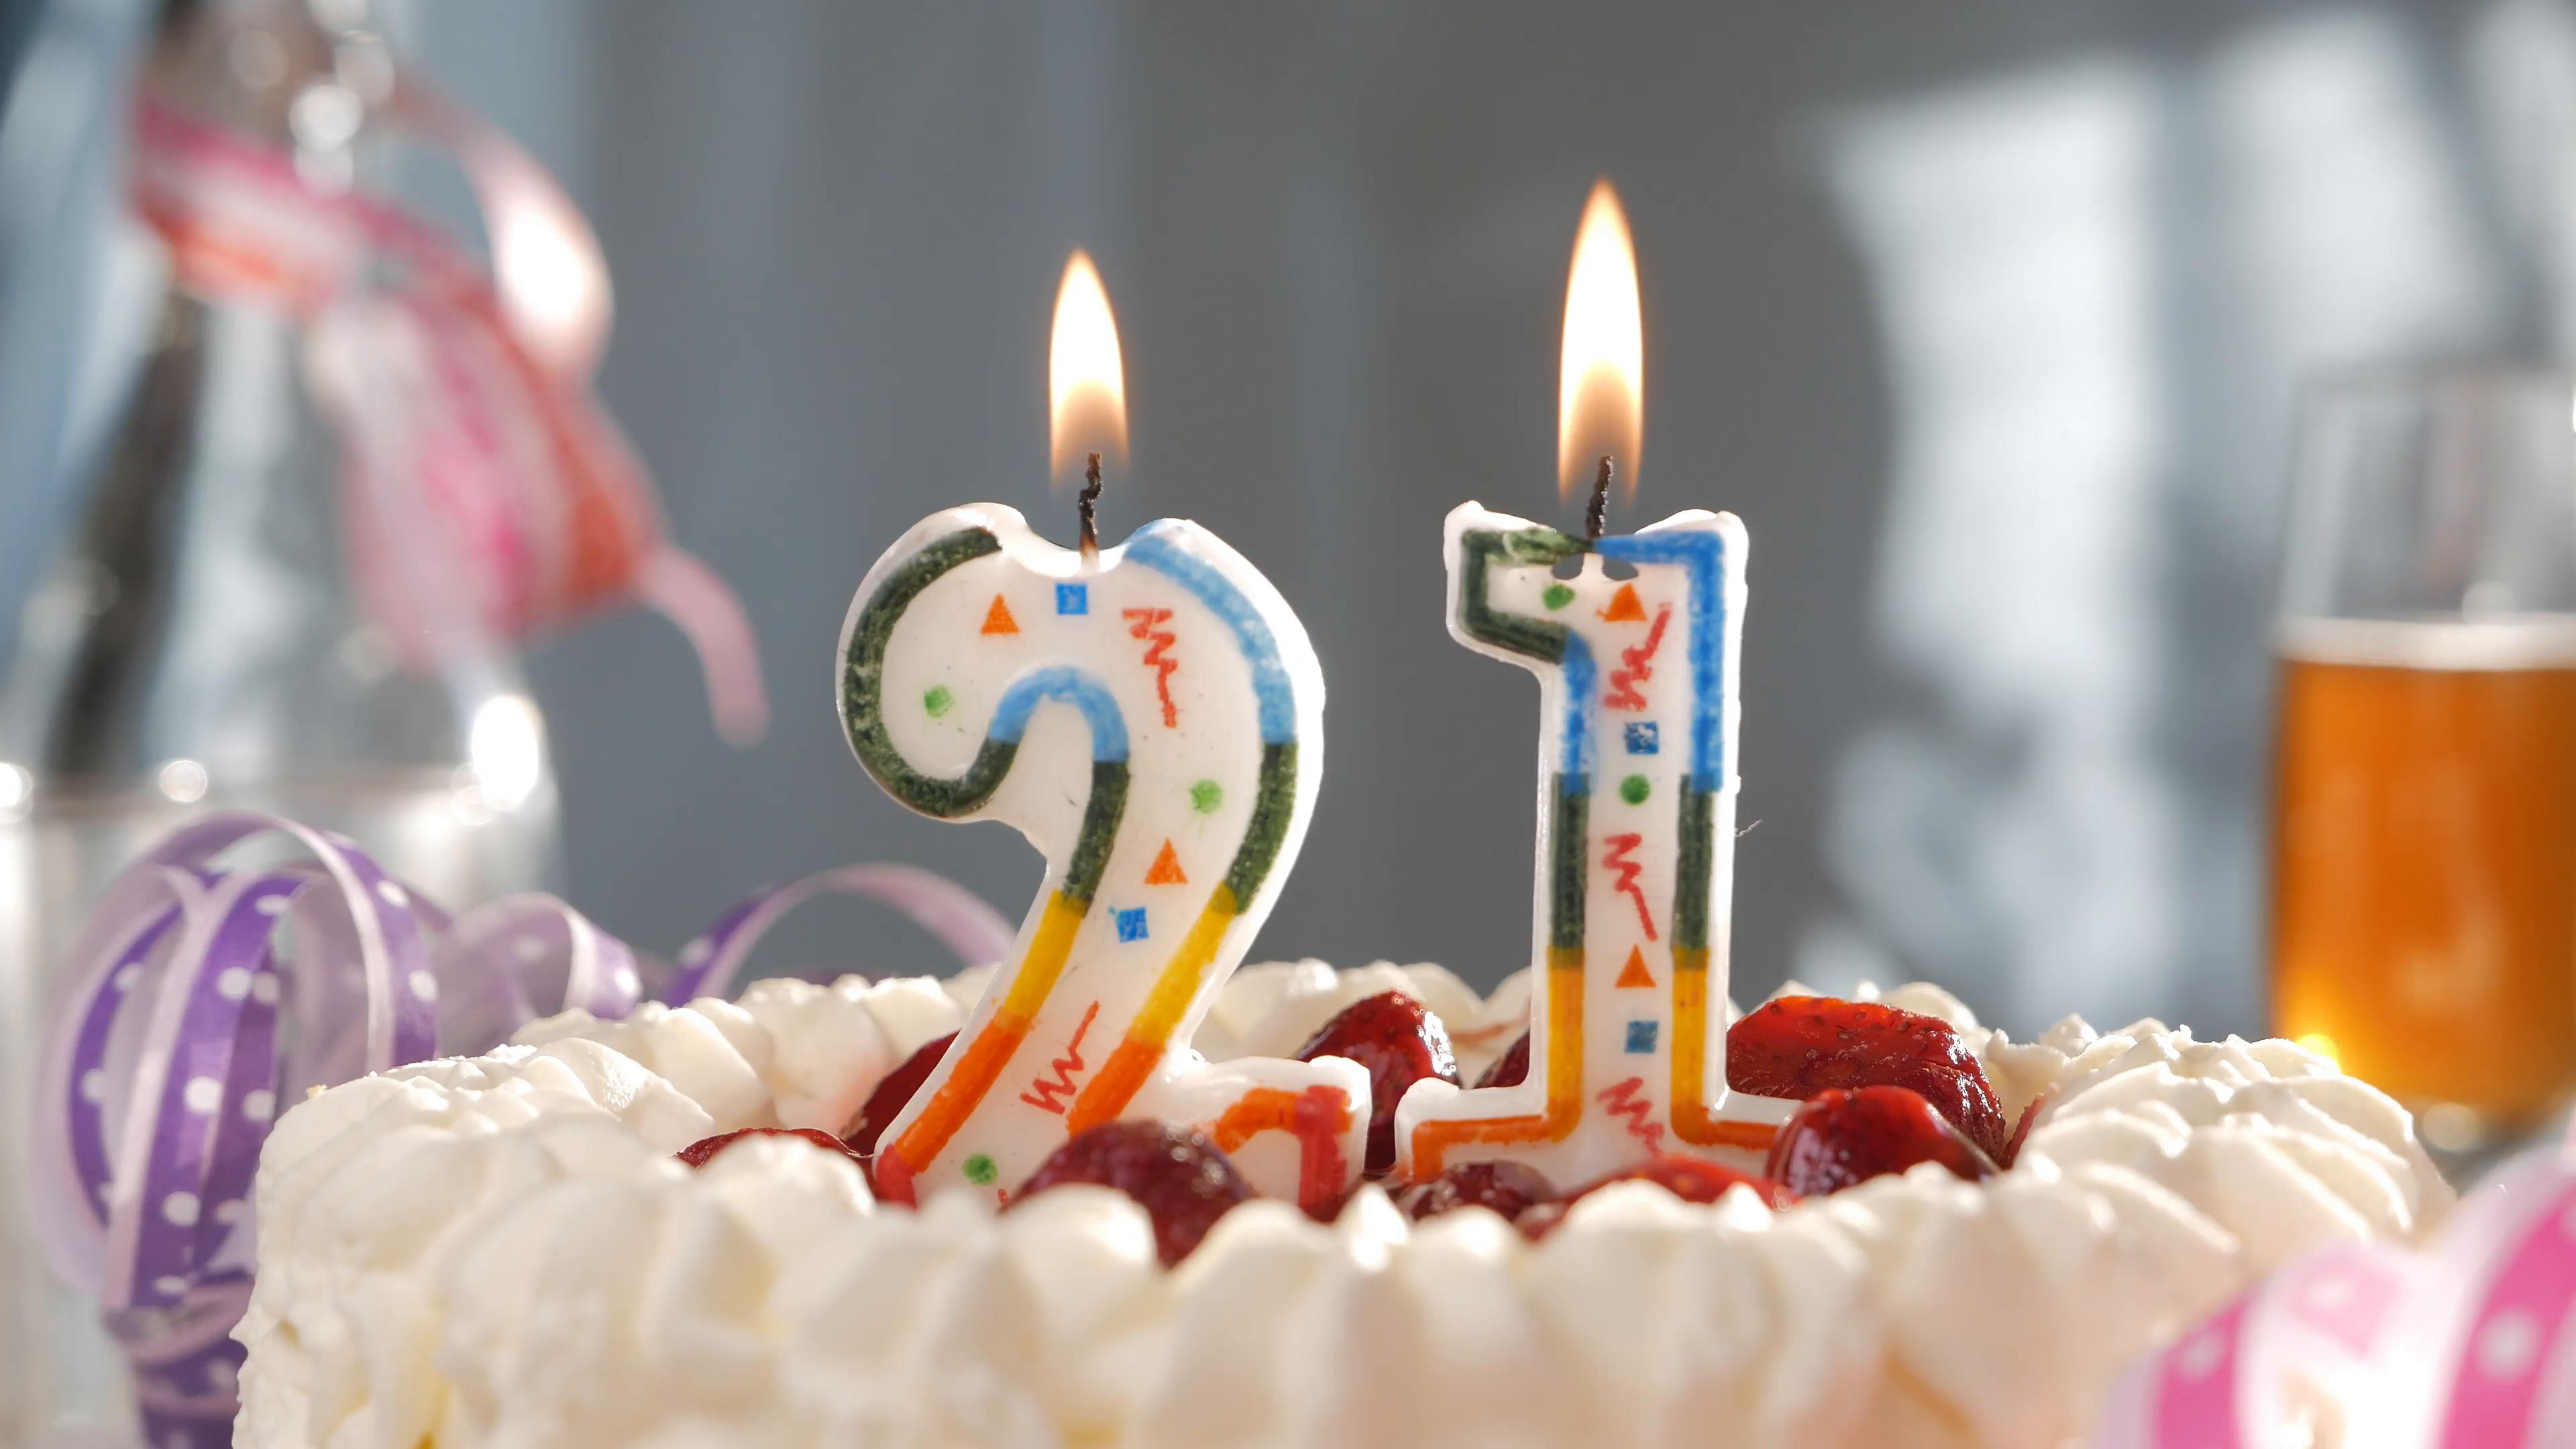 birthday candles ; birthday-cake-with-birthday-candles-with-the-number-21_v1vz9nwnl__F0000